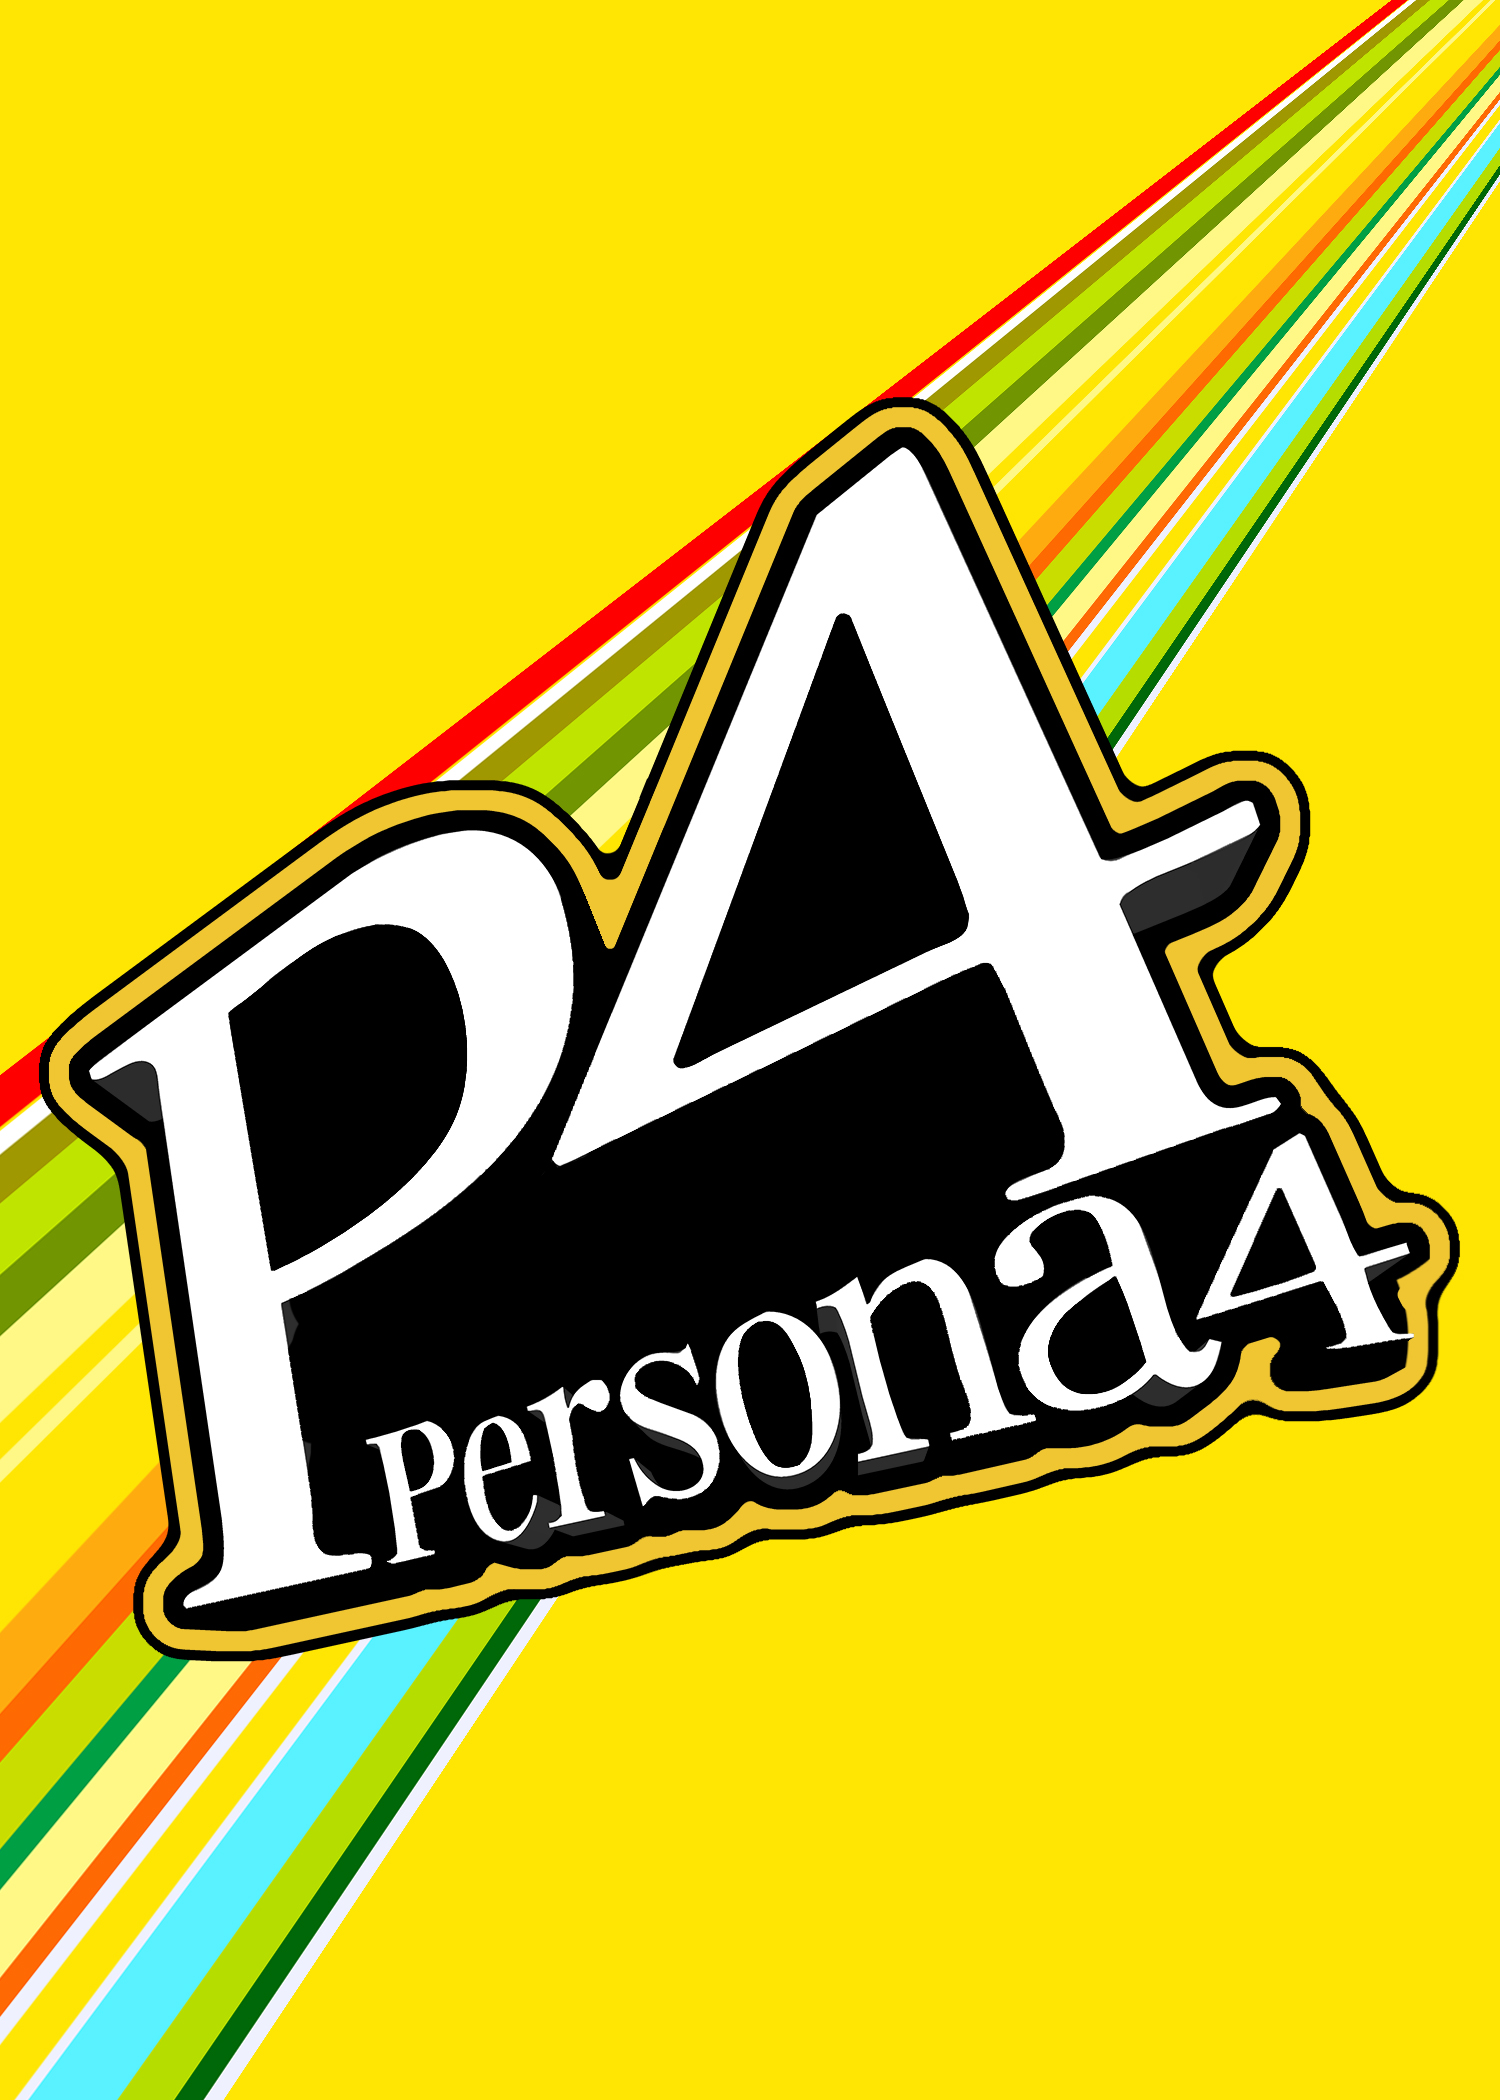 If Persona 4 Was a Card Game (For Funsies).